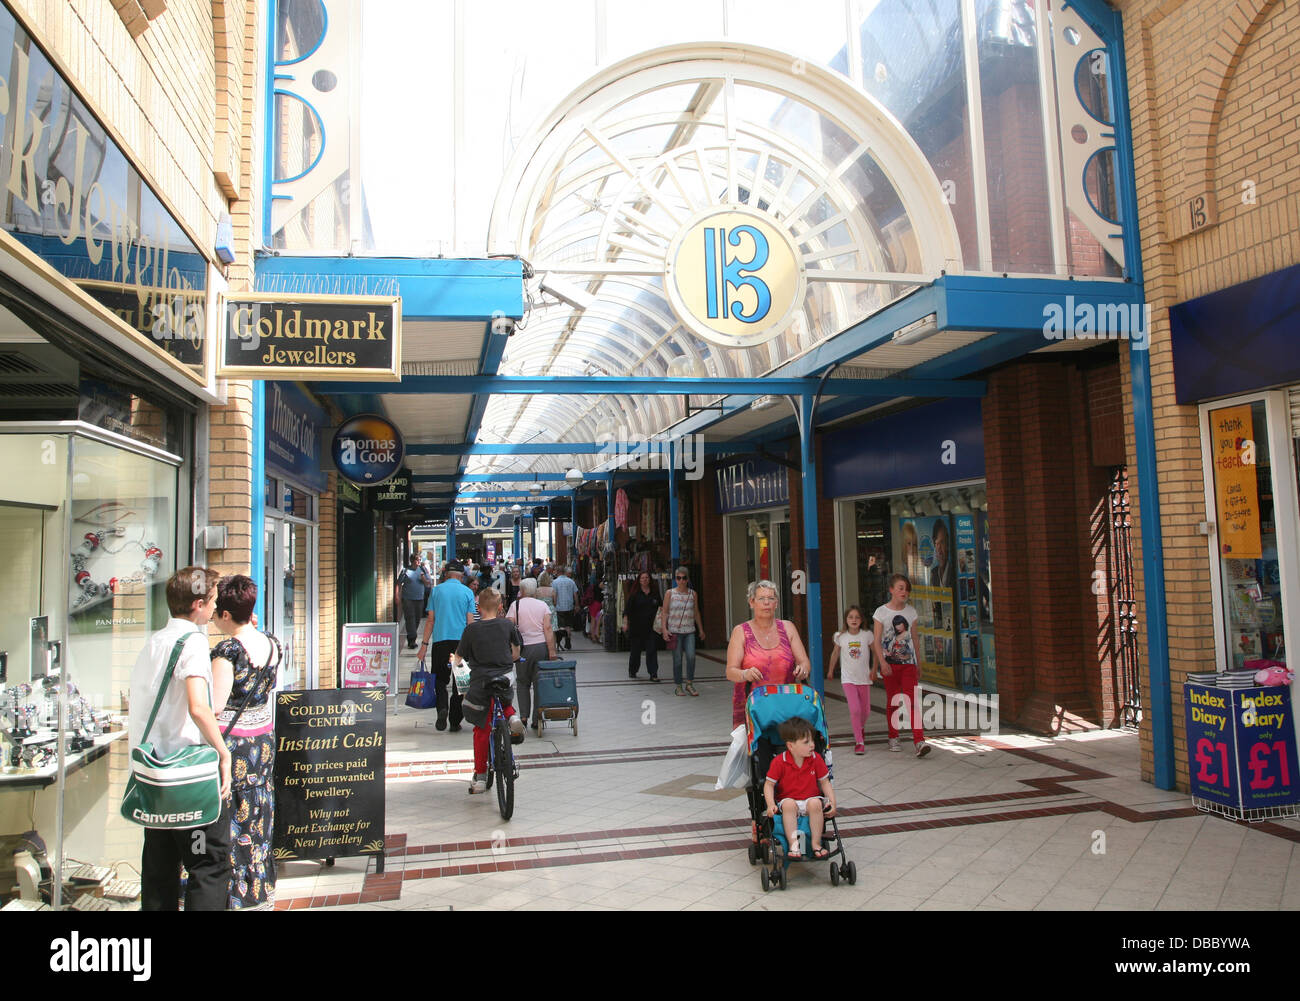 People Britten shopping Centre Lowestoft, Suffolk, England - Stock Image